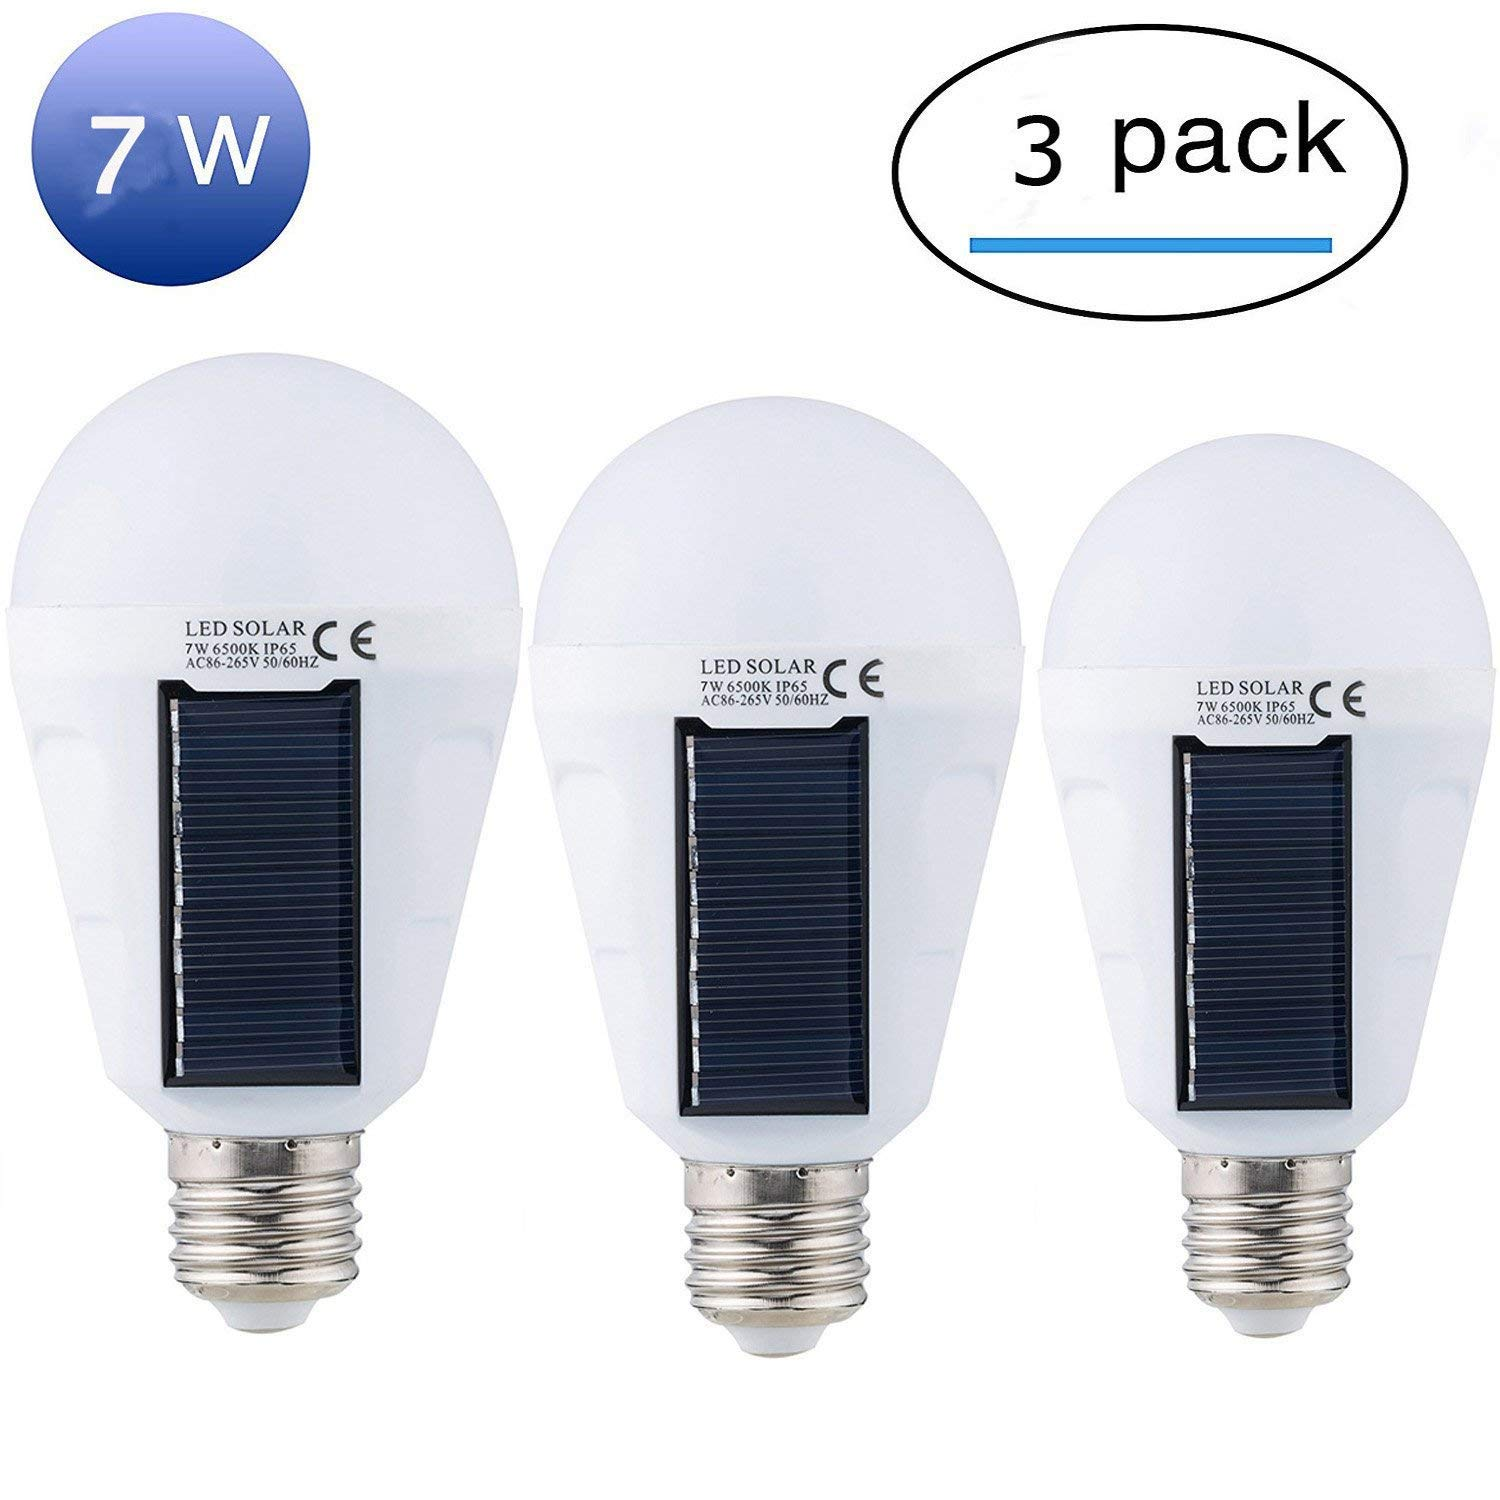 Mordely Solar Panel Light Bulb LED Powered Light,Portable Waterproof Emergency Light Bulb,7W 1200mAH with White Light for Indoor and Outdoor,Garden,Hiking,Camping,White